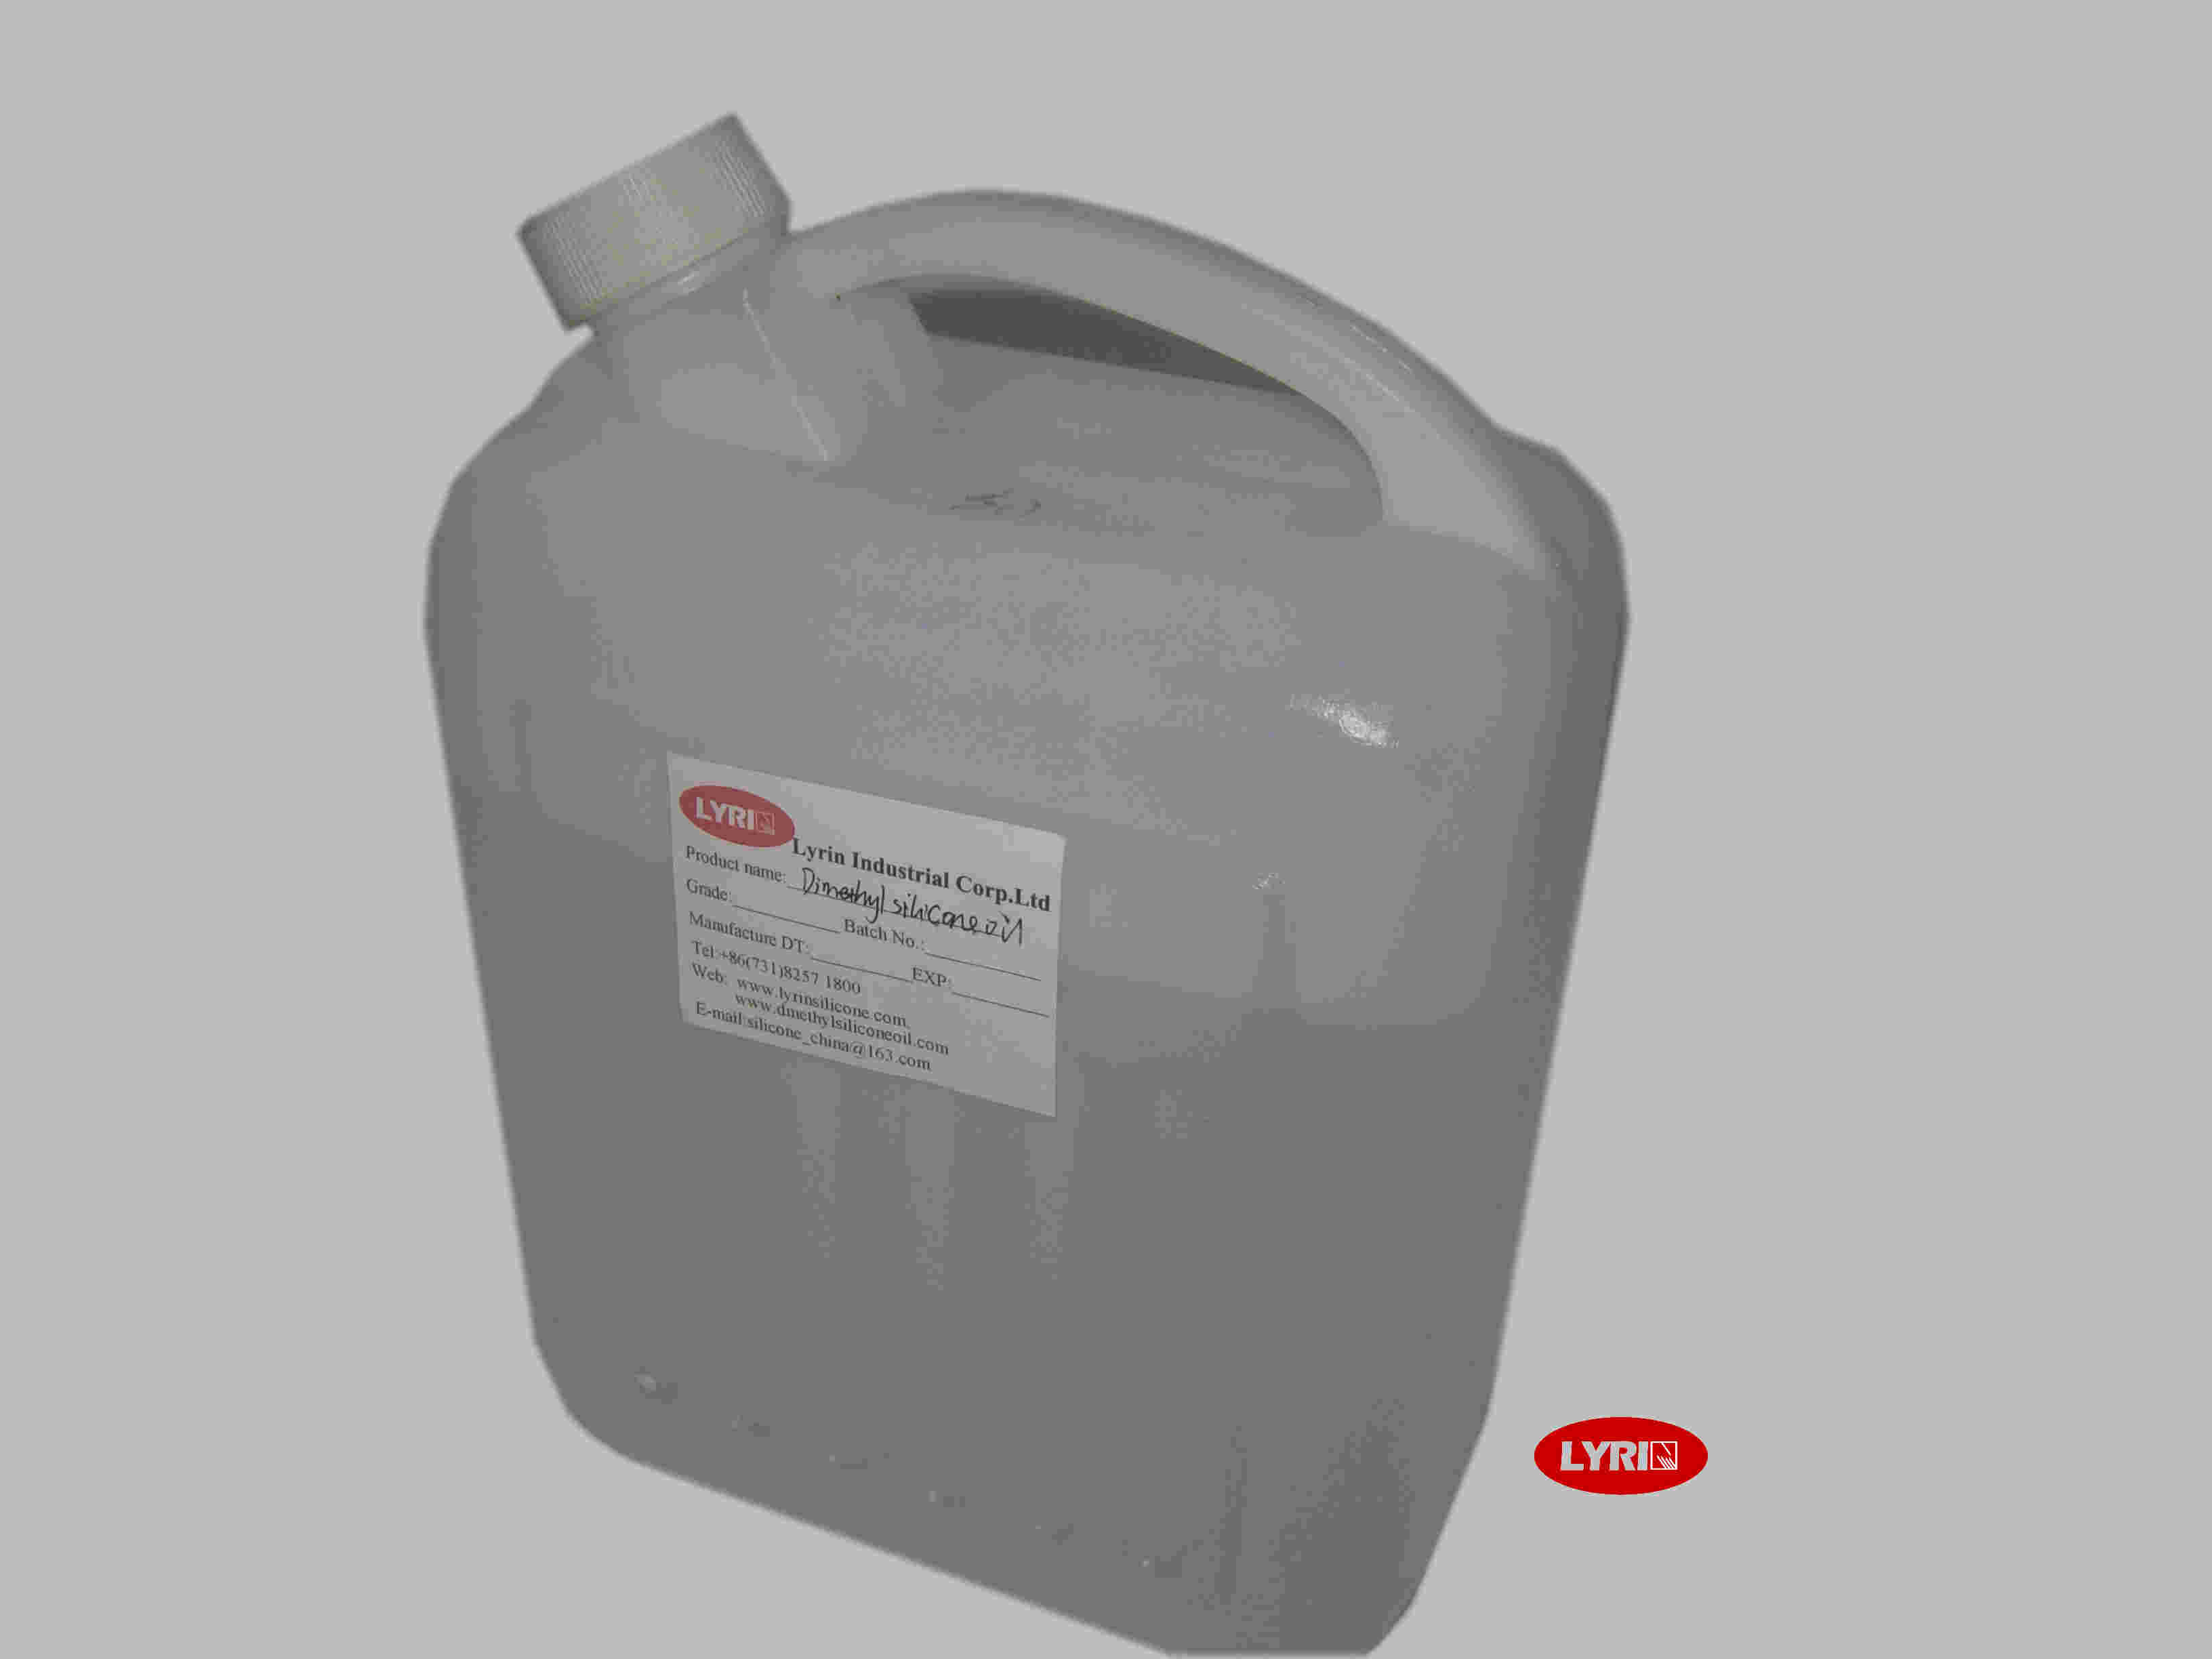 Non - Toxic Dimethyl Silicone Fluid With Medium Viscosity 100 - 5000 Cst